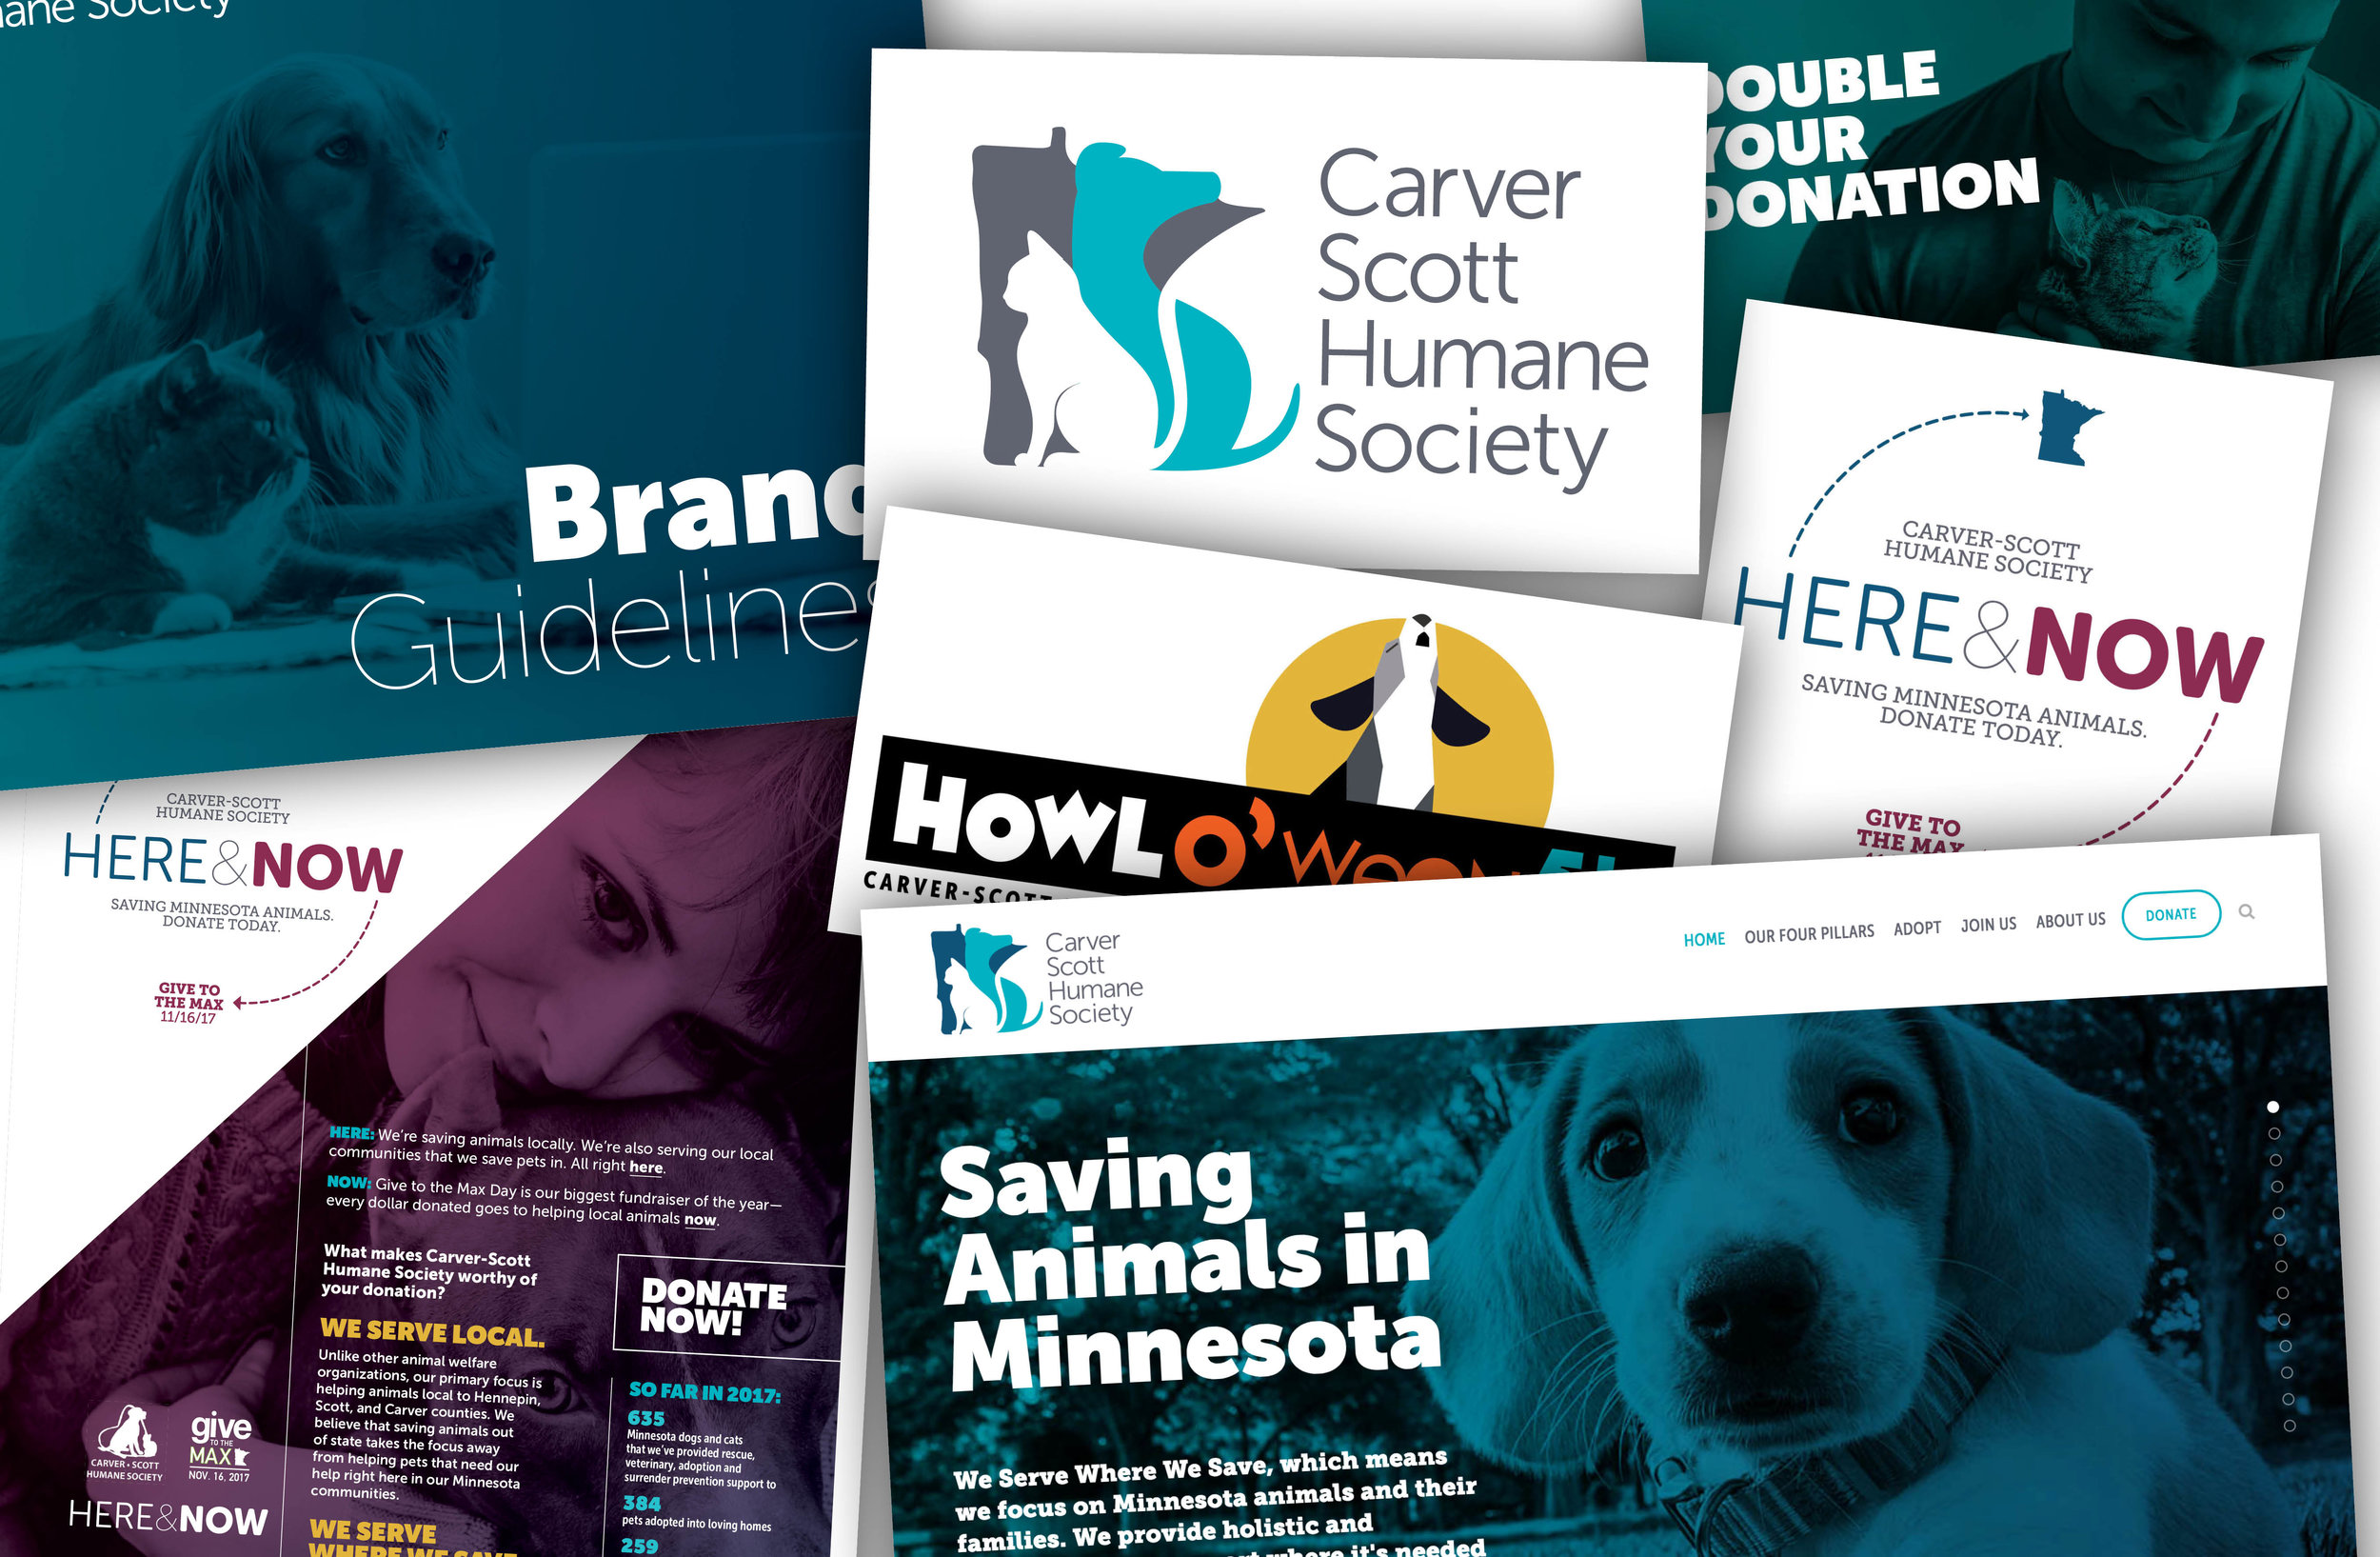 Carver Scott Humane Society - Selected design work from Carver Scott Humane SocietyThe work:> Logo + Branding updates > Website> Give to the Max Day design work> Event logos > Printed collateralThe Results: An updated brand has given CSHS a bold and flexible look to match its bold and flexible mission. They've seen huge increases in Give to the Max Day fundraising results with the help of our campaigns.[ Work completed by Arrow 34 in conjunction with Cooks Bay Marketing. ]